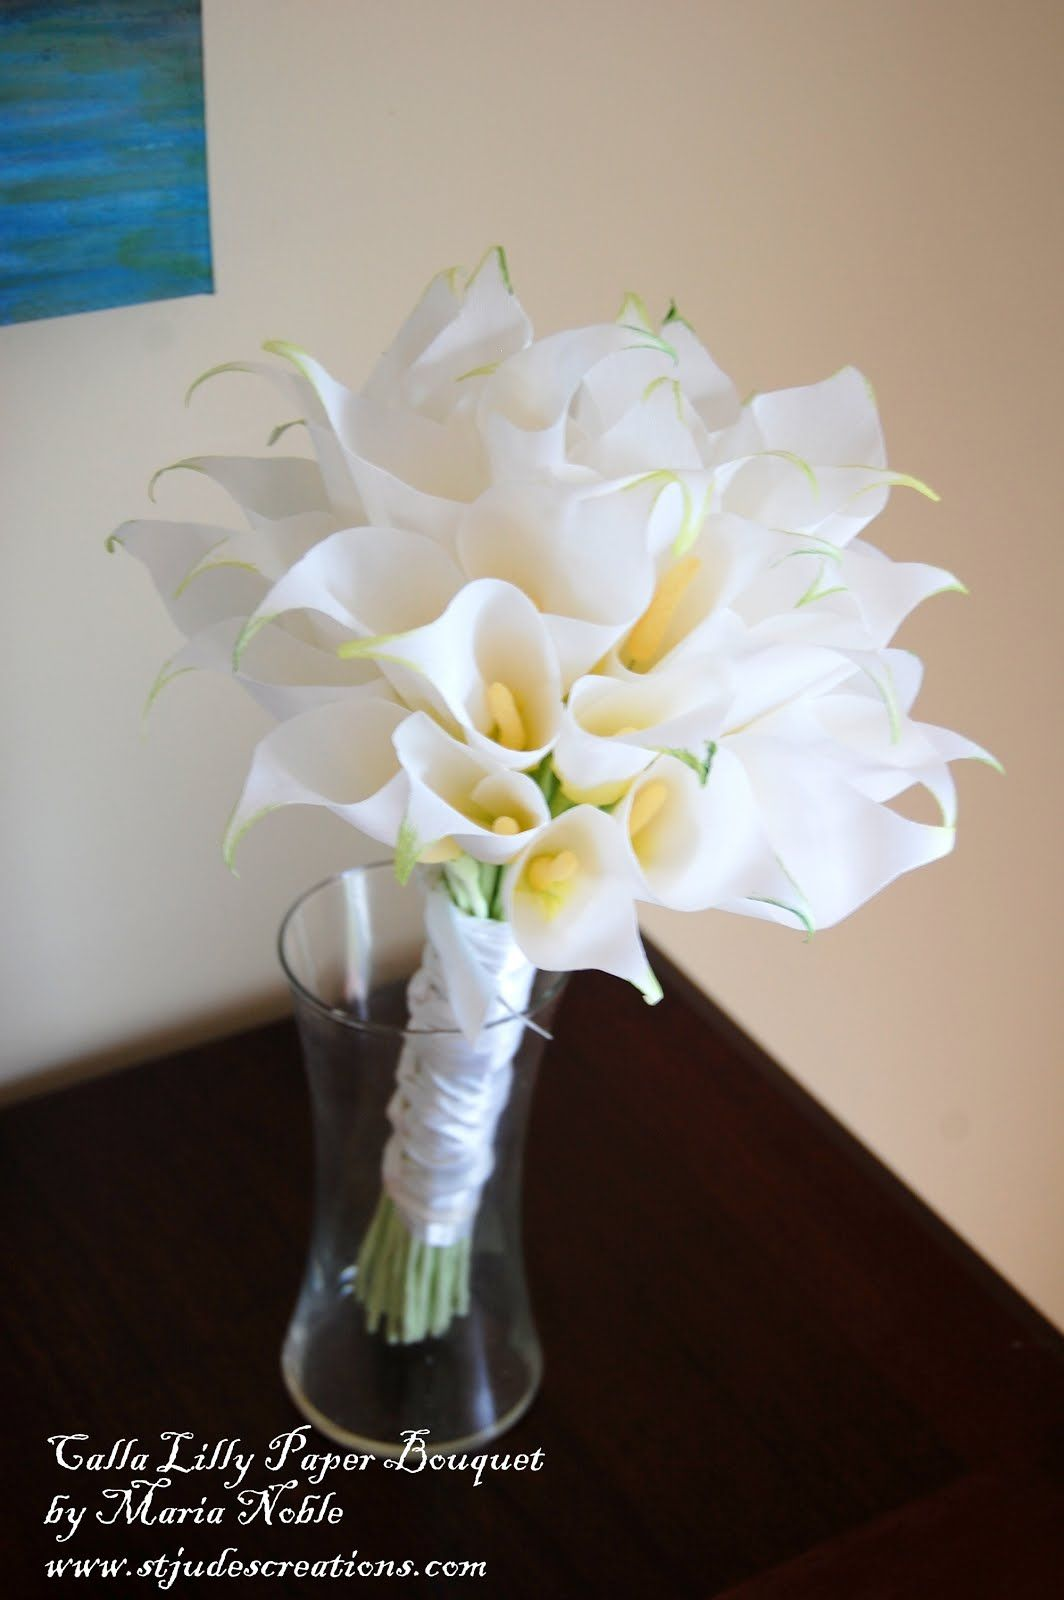 Calla Lilly Wedding paper flower Bouquet for Boyd recreation Calla